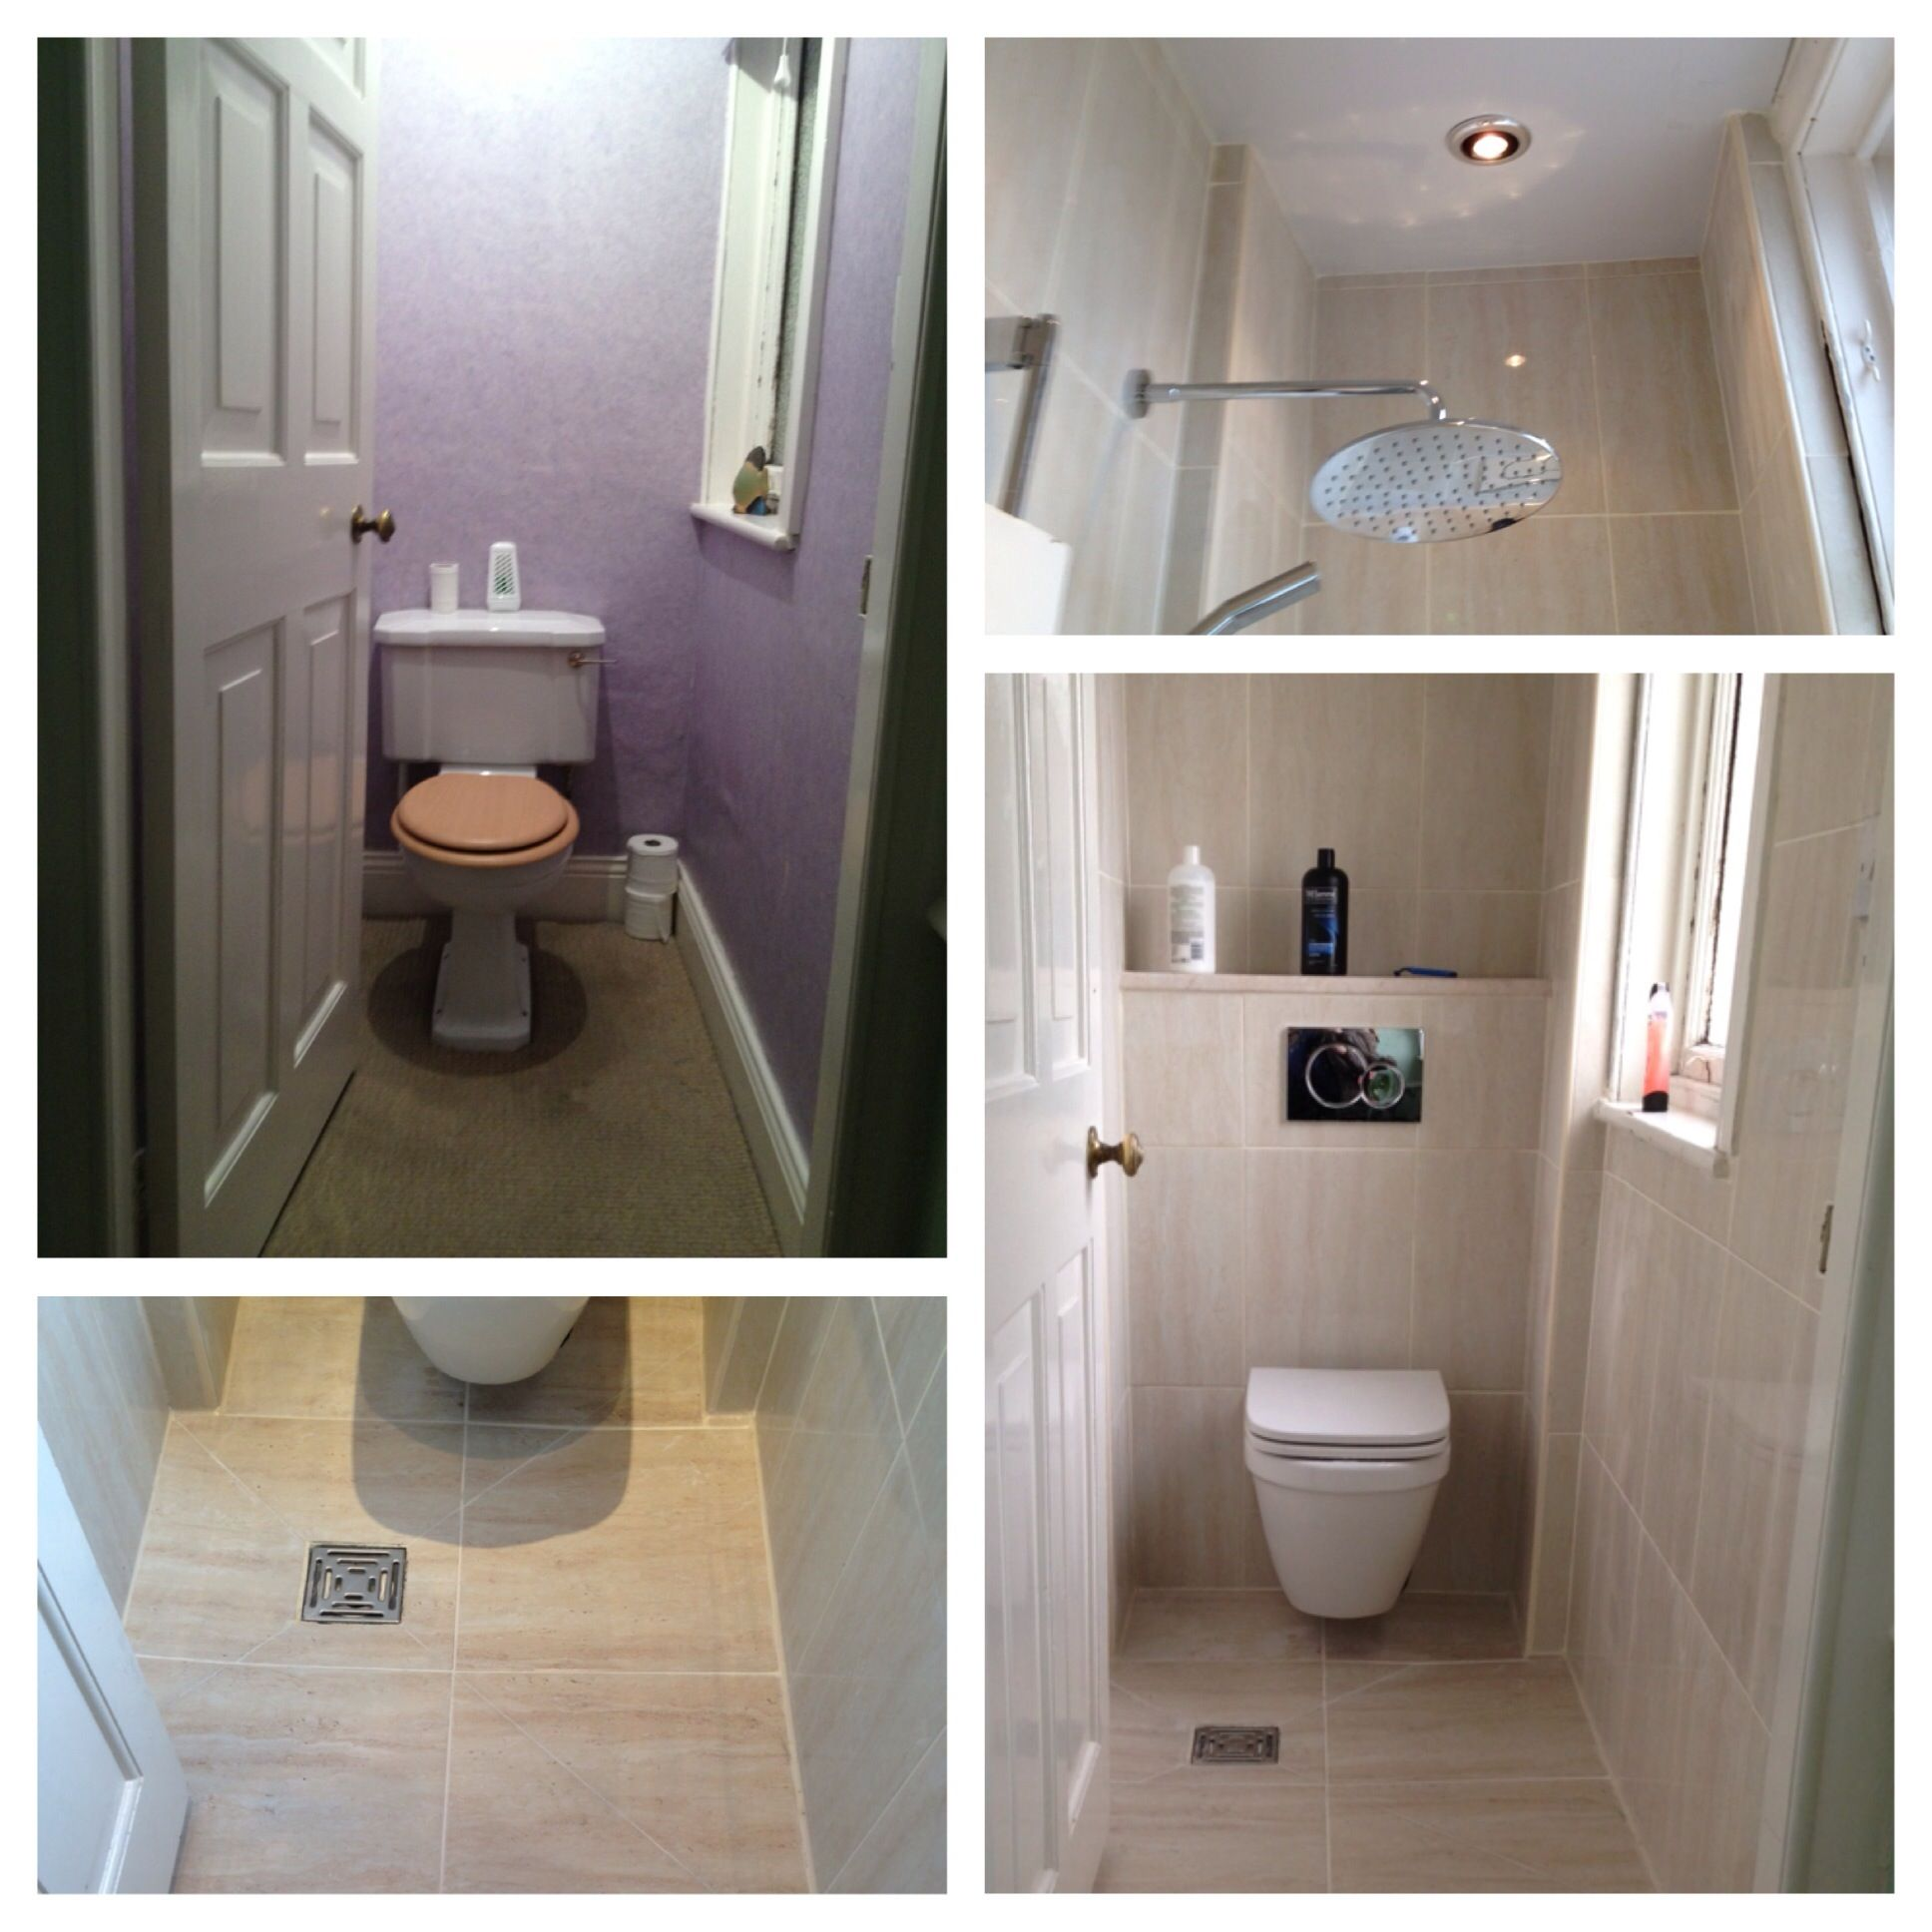 Wc Room Transformed To Wetroom With The Addition Of A Drop Head Concealed Shower Wet Room Bathroom Wet Rooms Small Shower Room